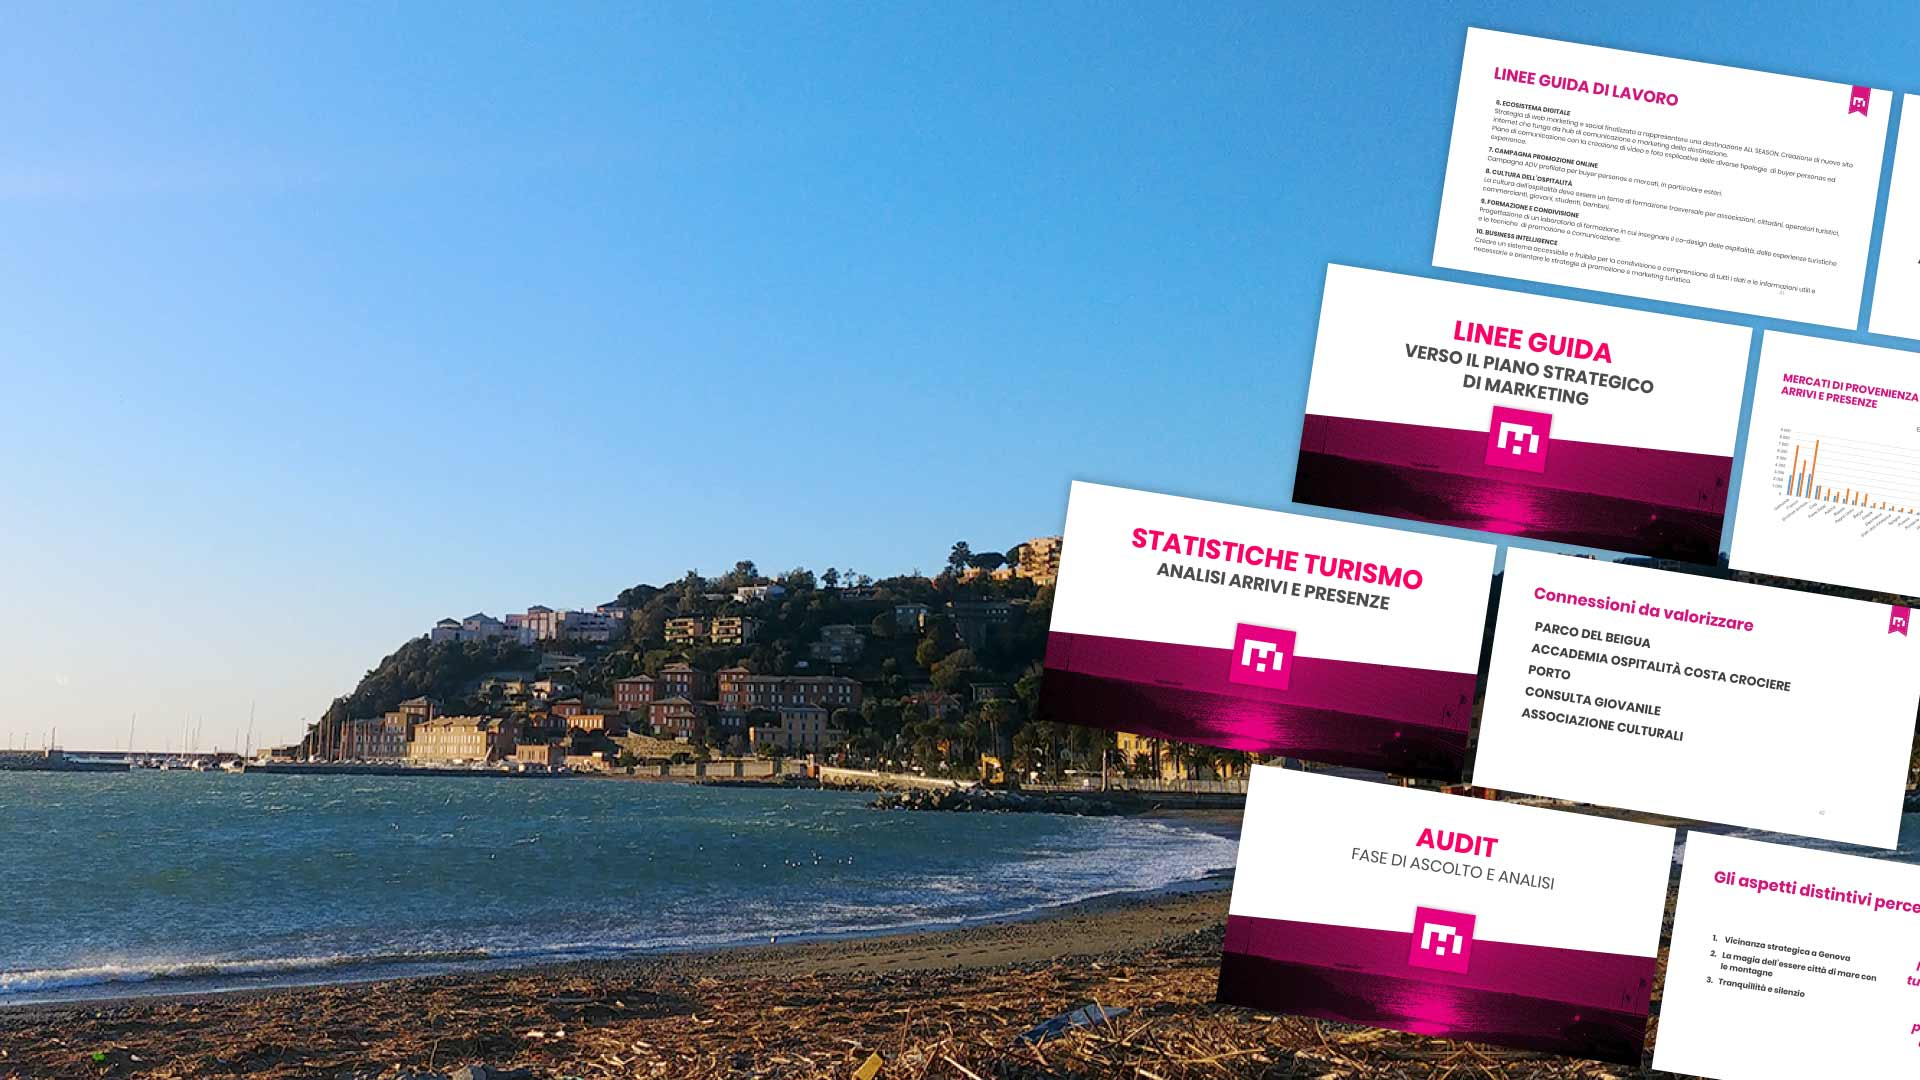 arenzano-liguria-piano-marketing-turismo-2020